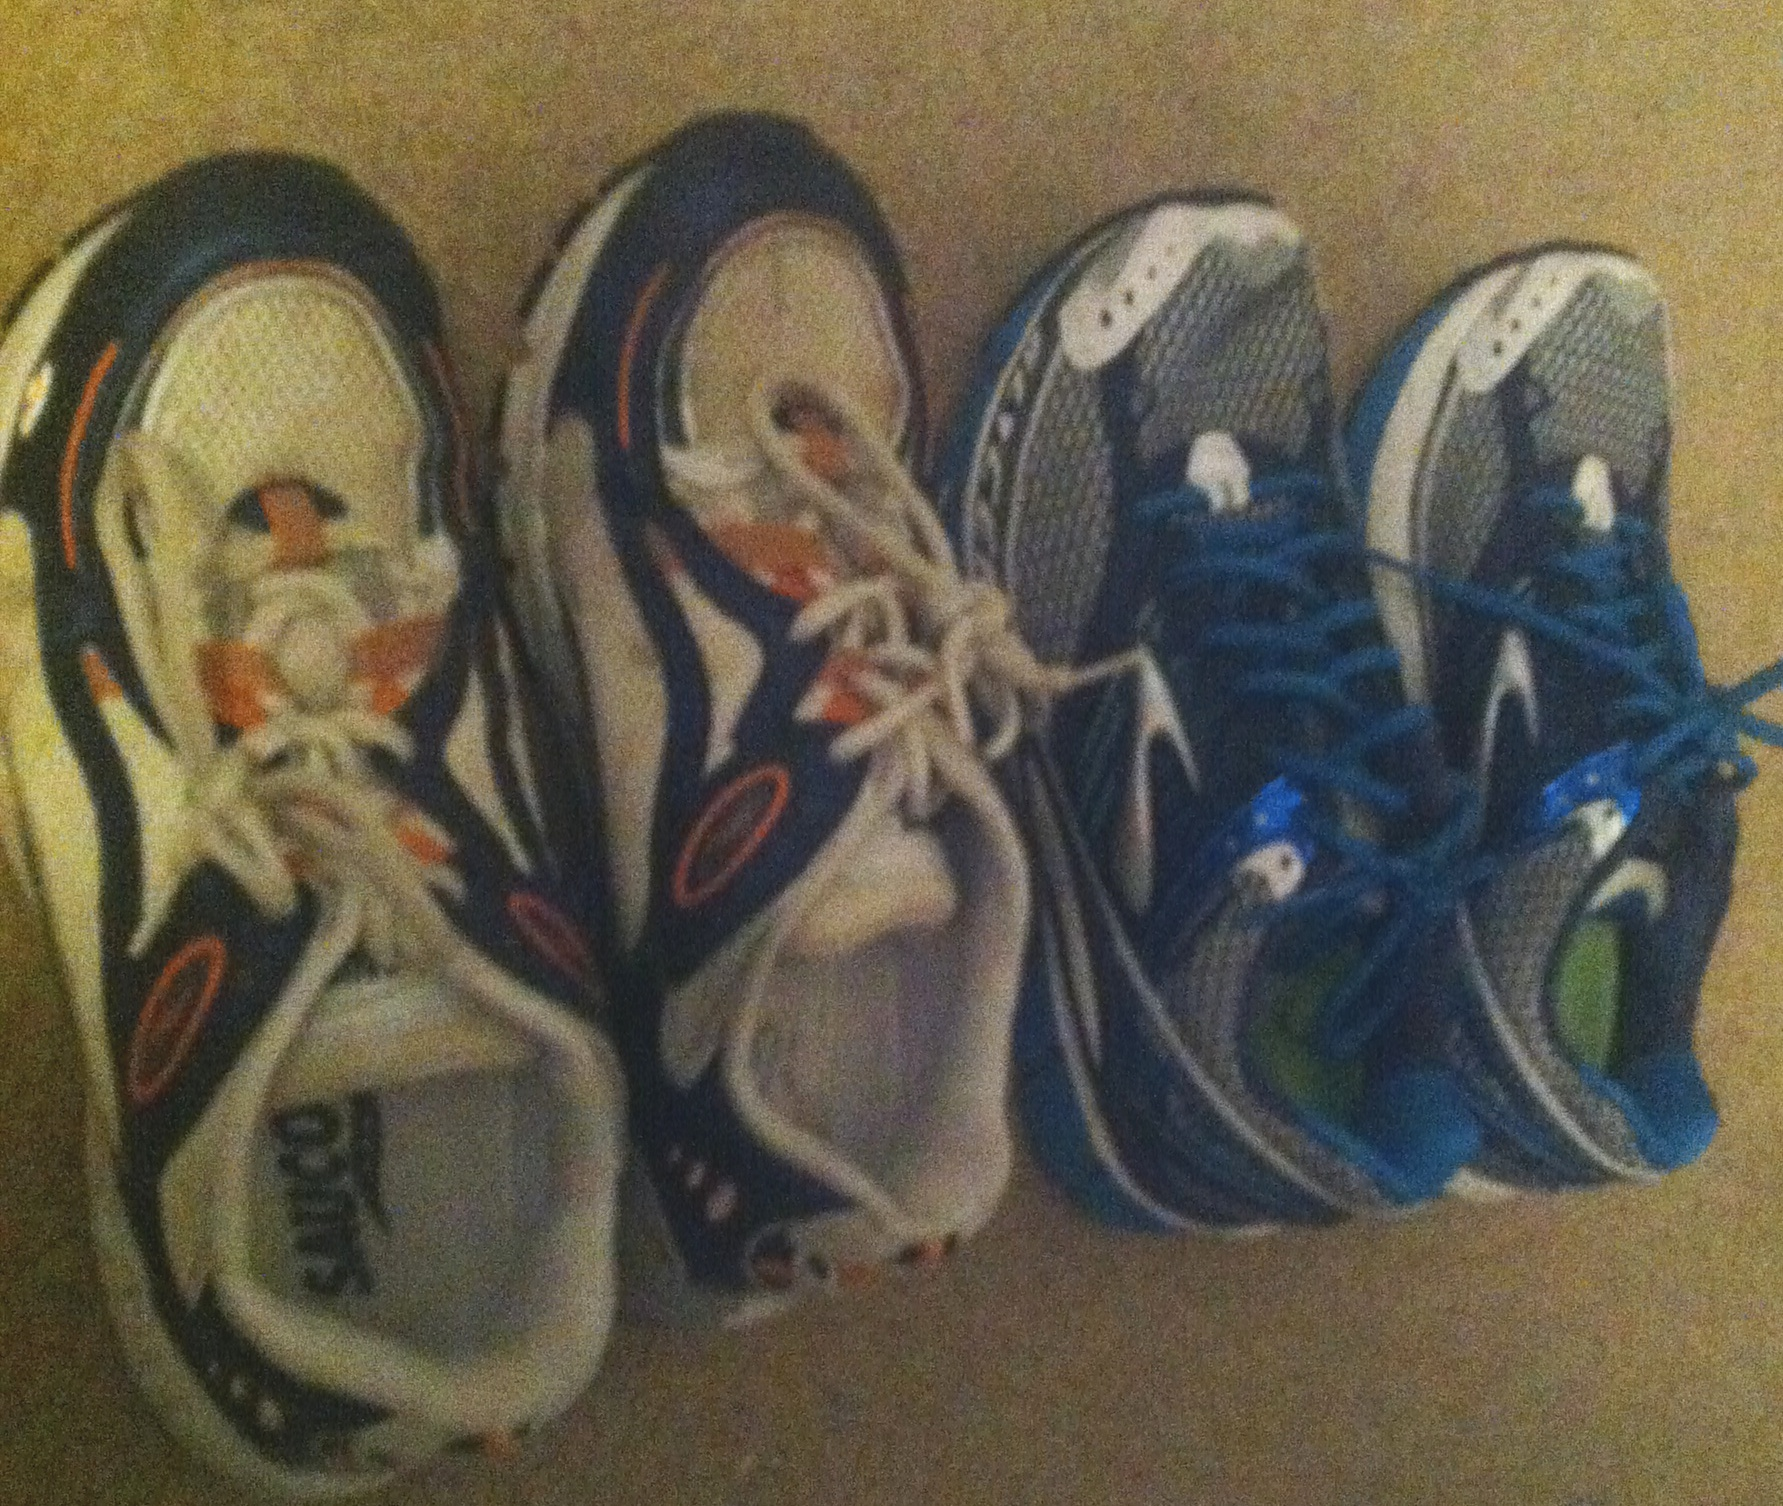 Old (left) and new (right) running shoes.